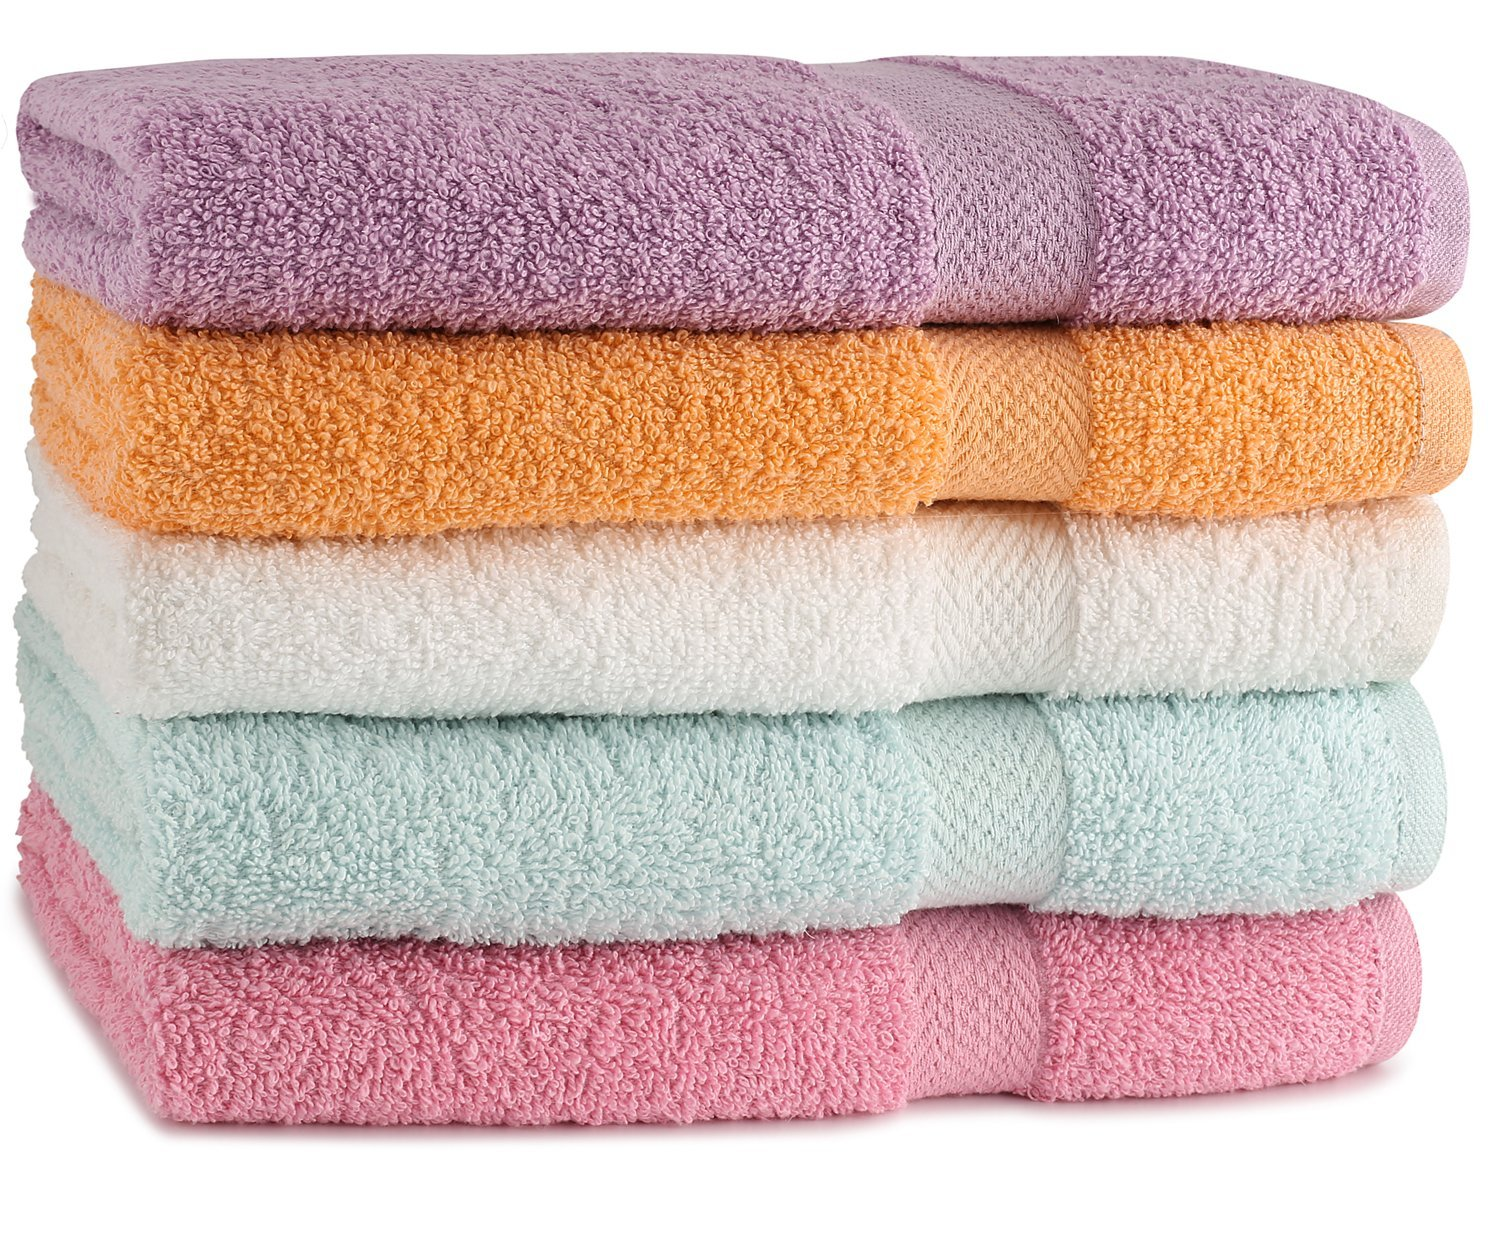 TowelFirst 5-Pack Extra-Absorbent Bath Towel Set - Large, 27'' x 54'', 100% Cotton Bath Towels - Soft and Quick Drying - Best for Bath, Pool and Guest Use, Bonus - 2 12''x12'' Washcloths (Pastel)